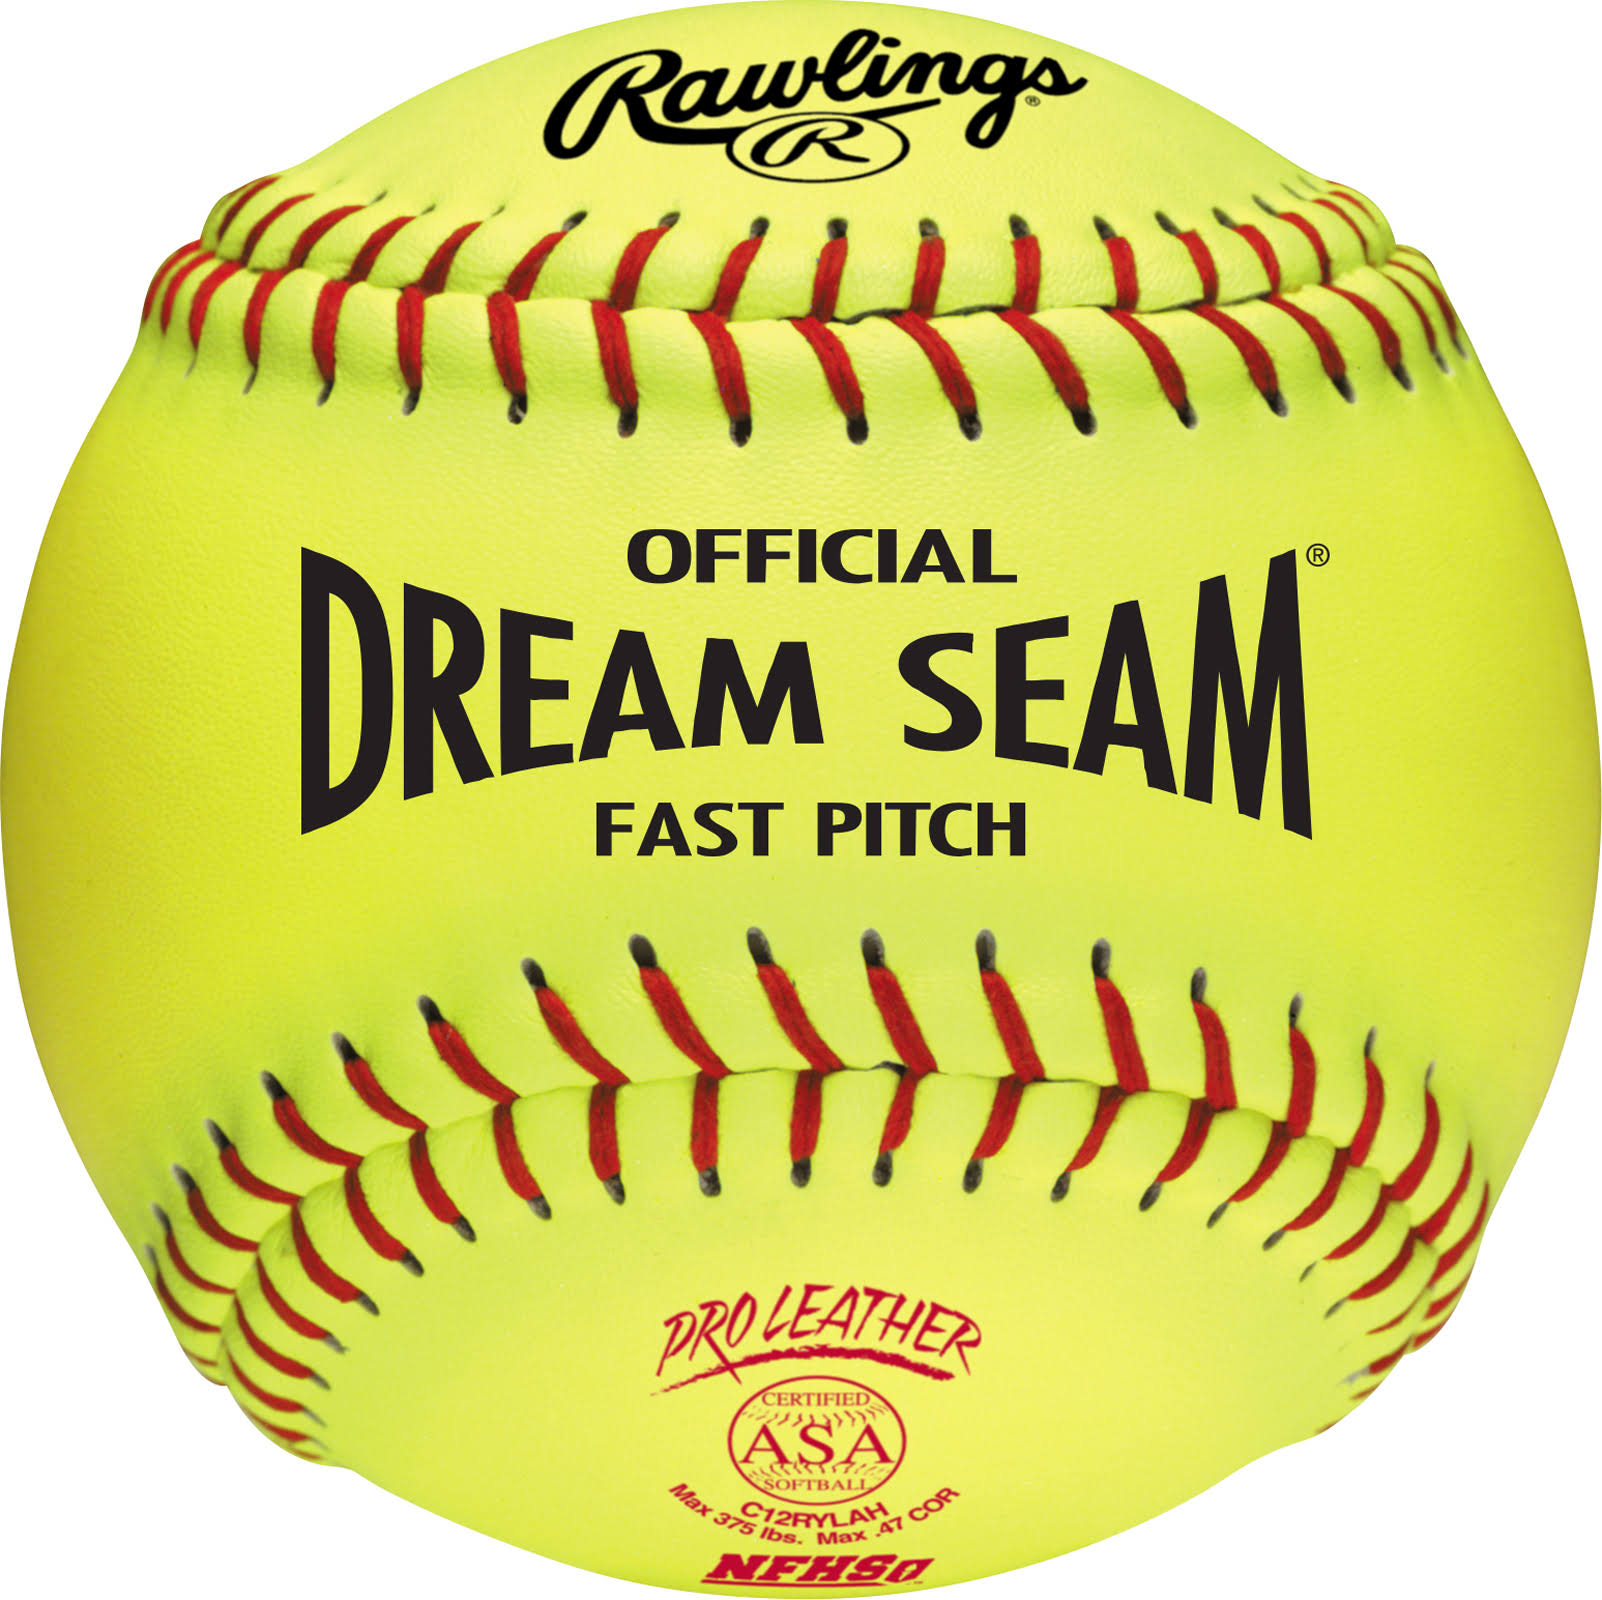 Rawlings Sporting Goods Official Dream Seam Fast Pitch Baseball